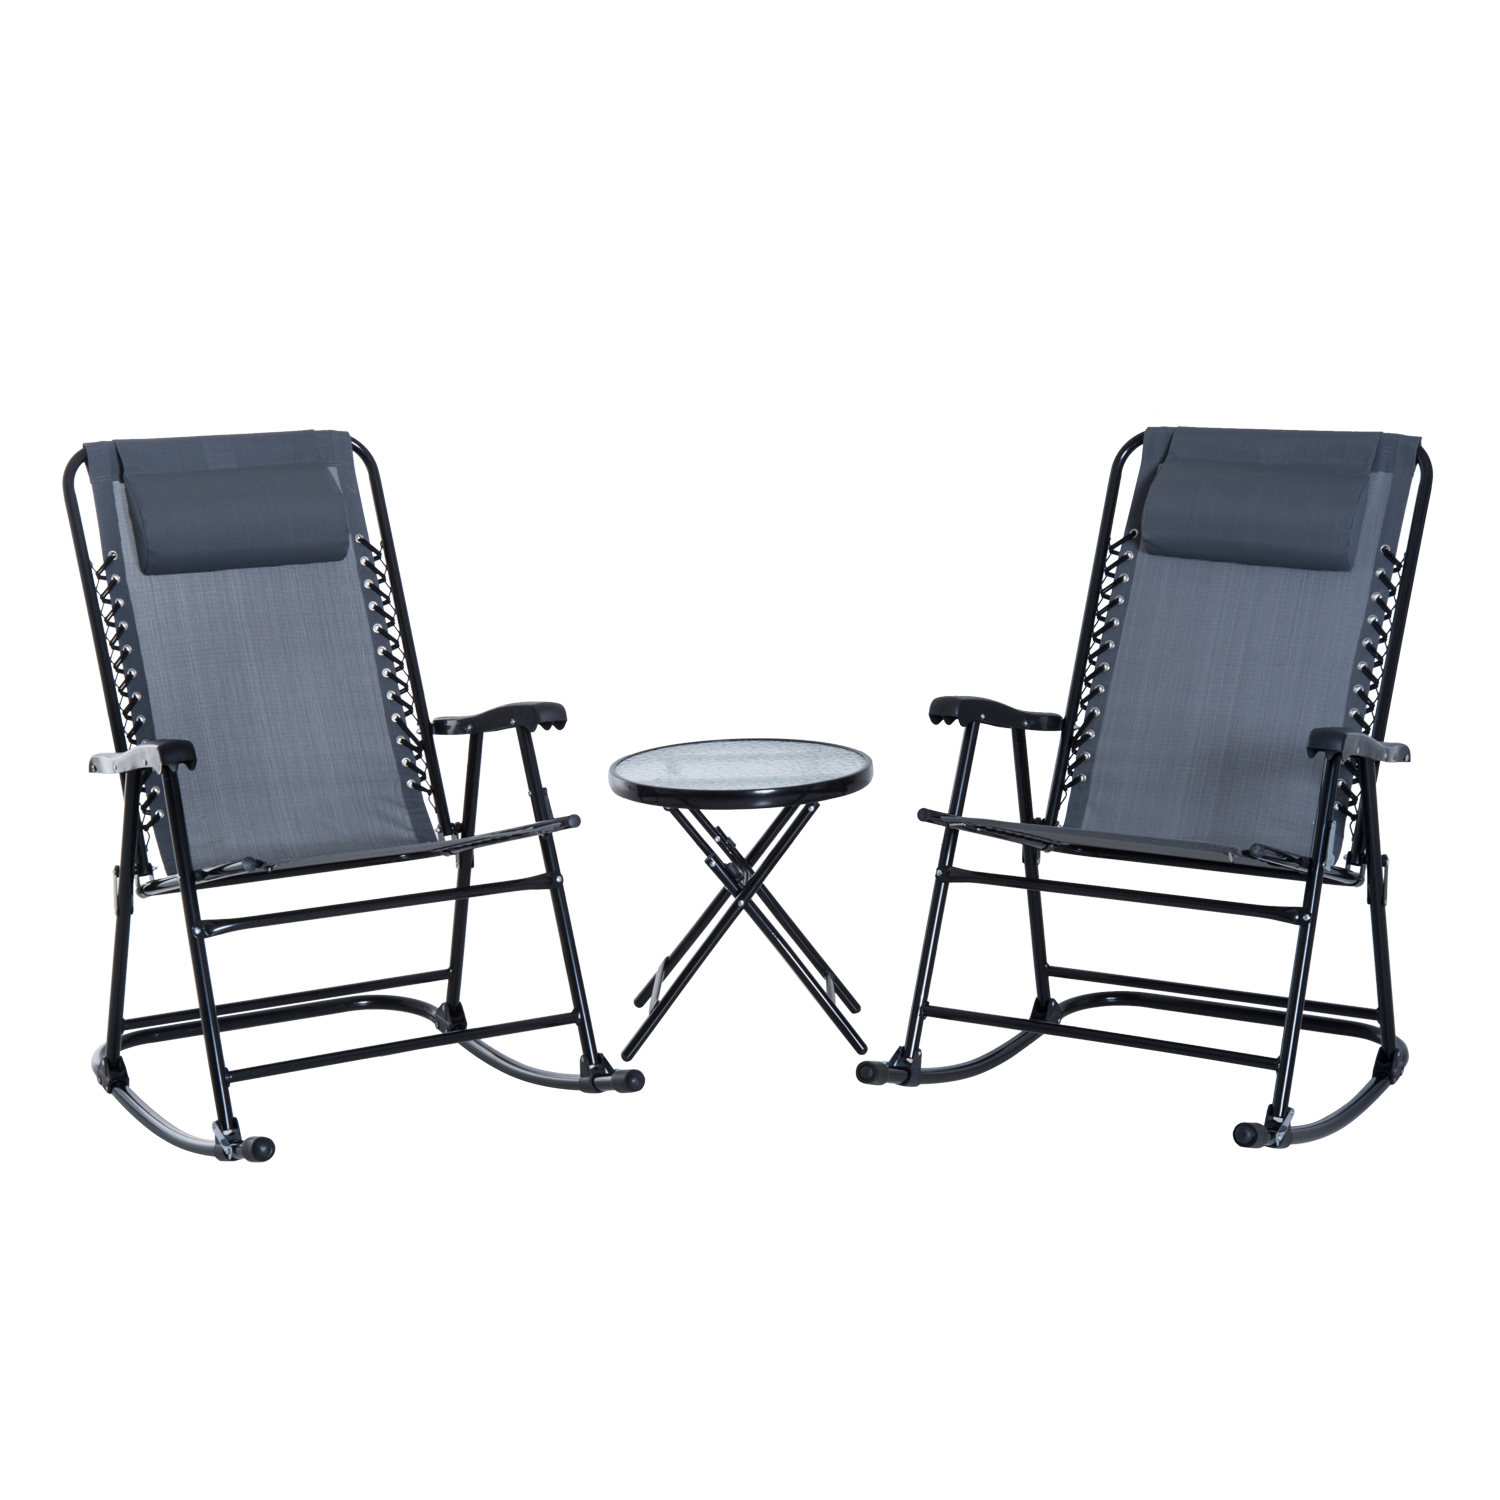 Outsunny Folding Outdoor Rocking Chair Set with Side Table